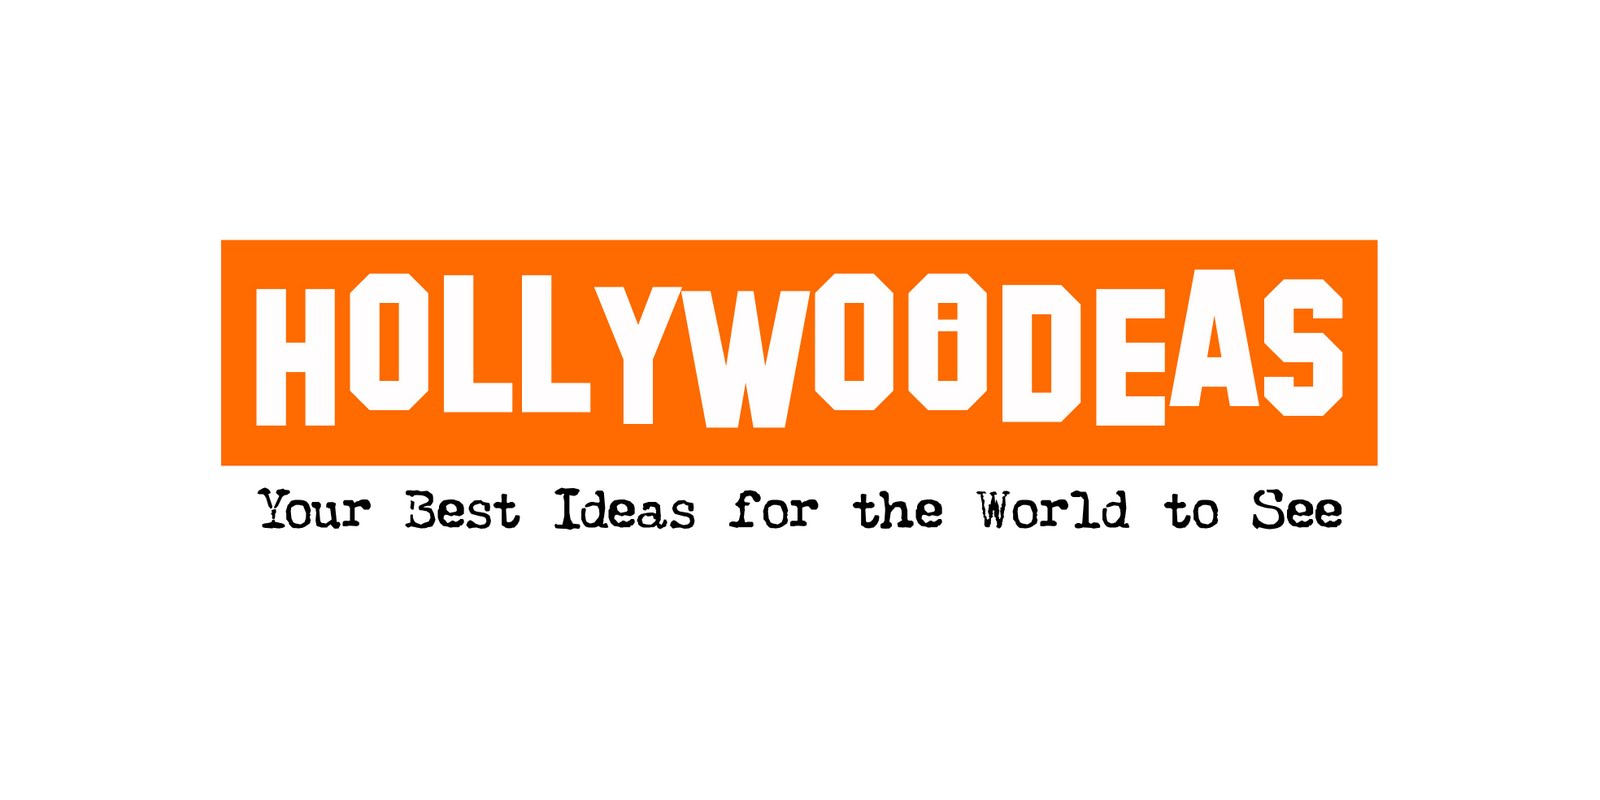 hollywoodeas